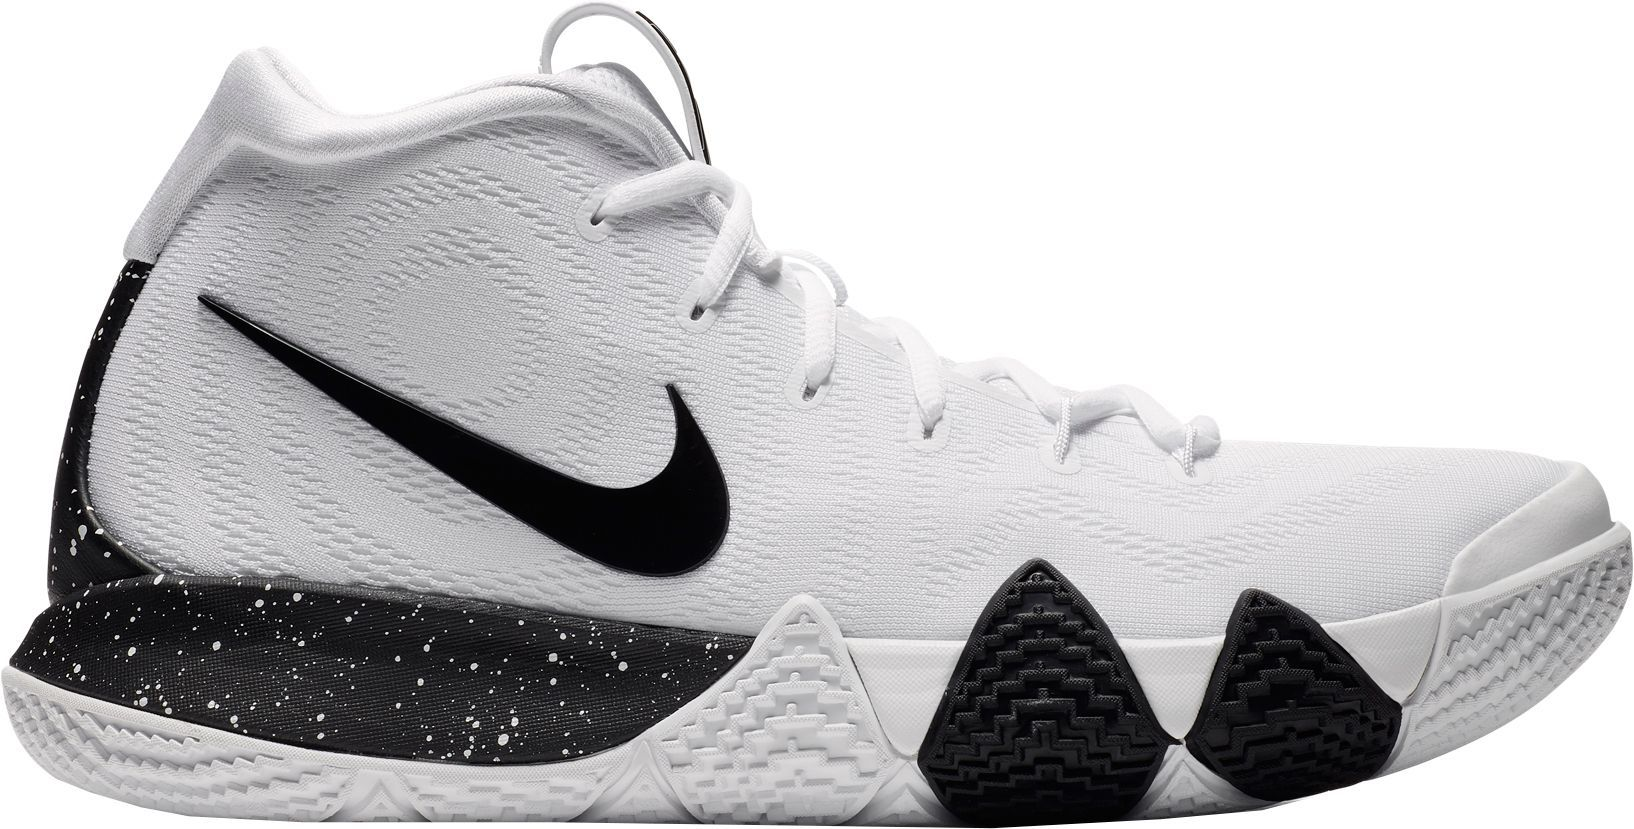 new style 2765b 101ae Nike Kyrie 4 Basketball Shoes | Products in 2019 | White ...